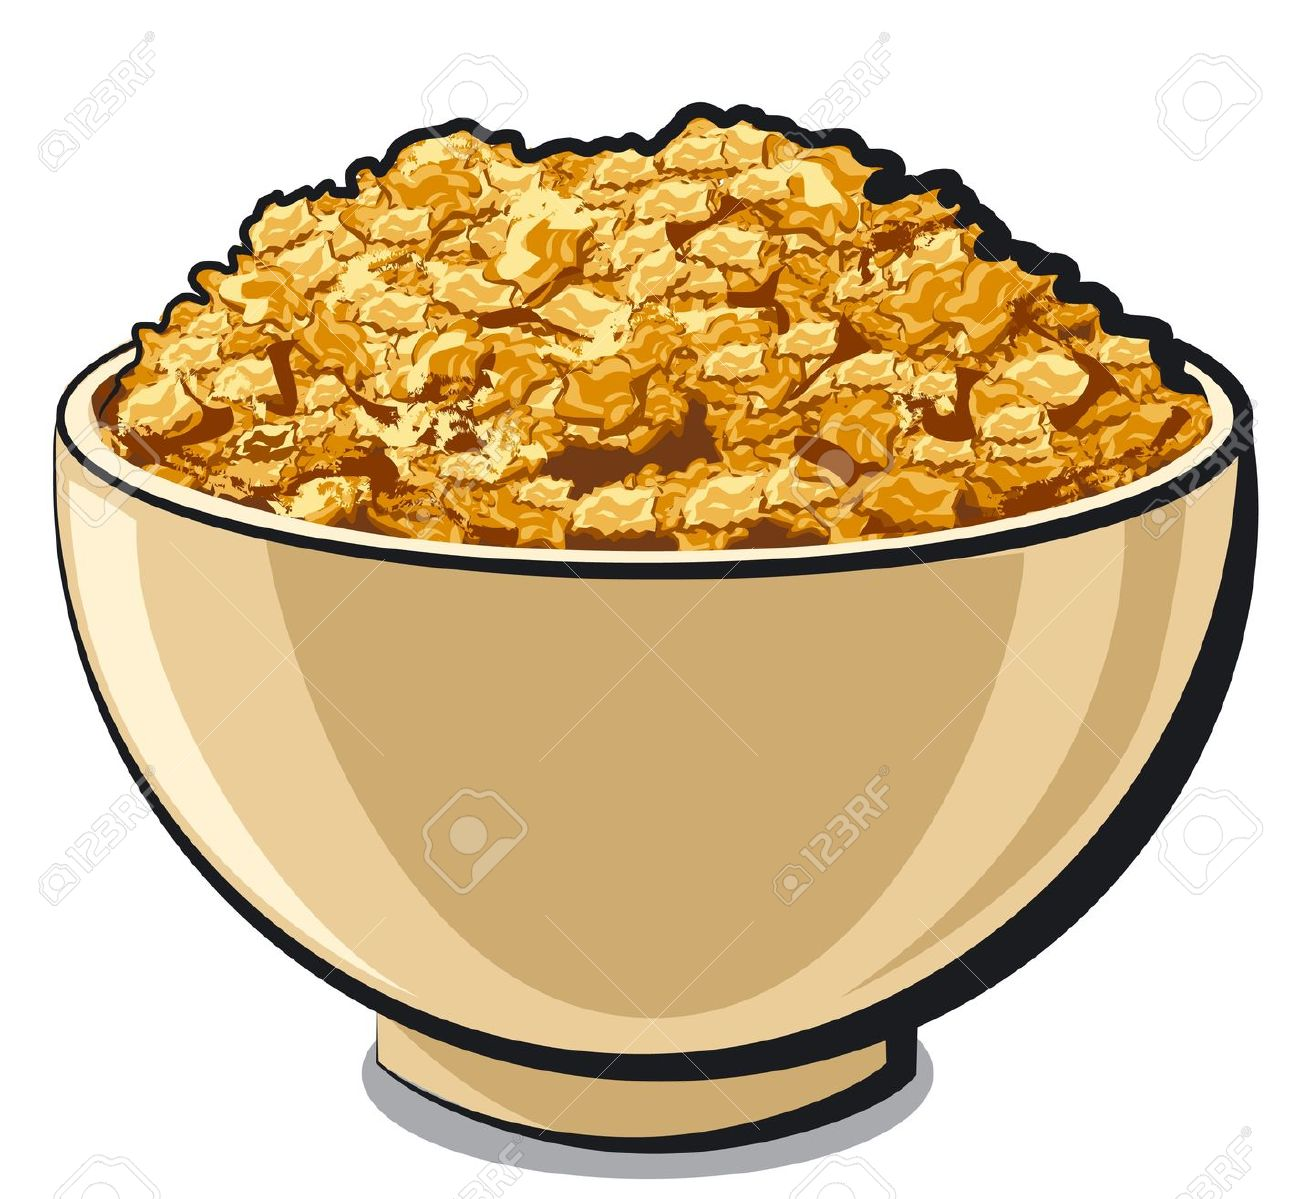 1300x1199 Cereal Clipart Colorful